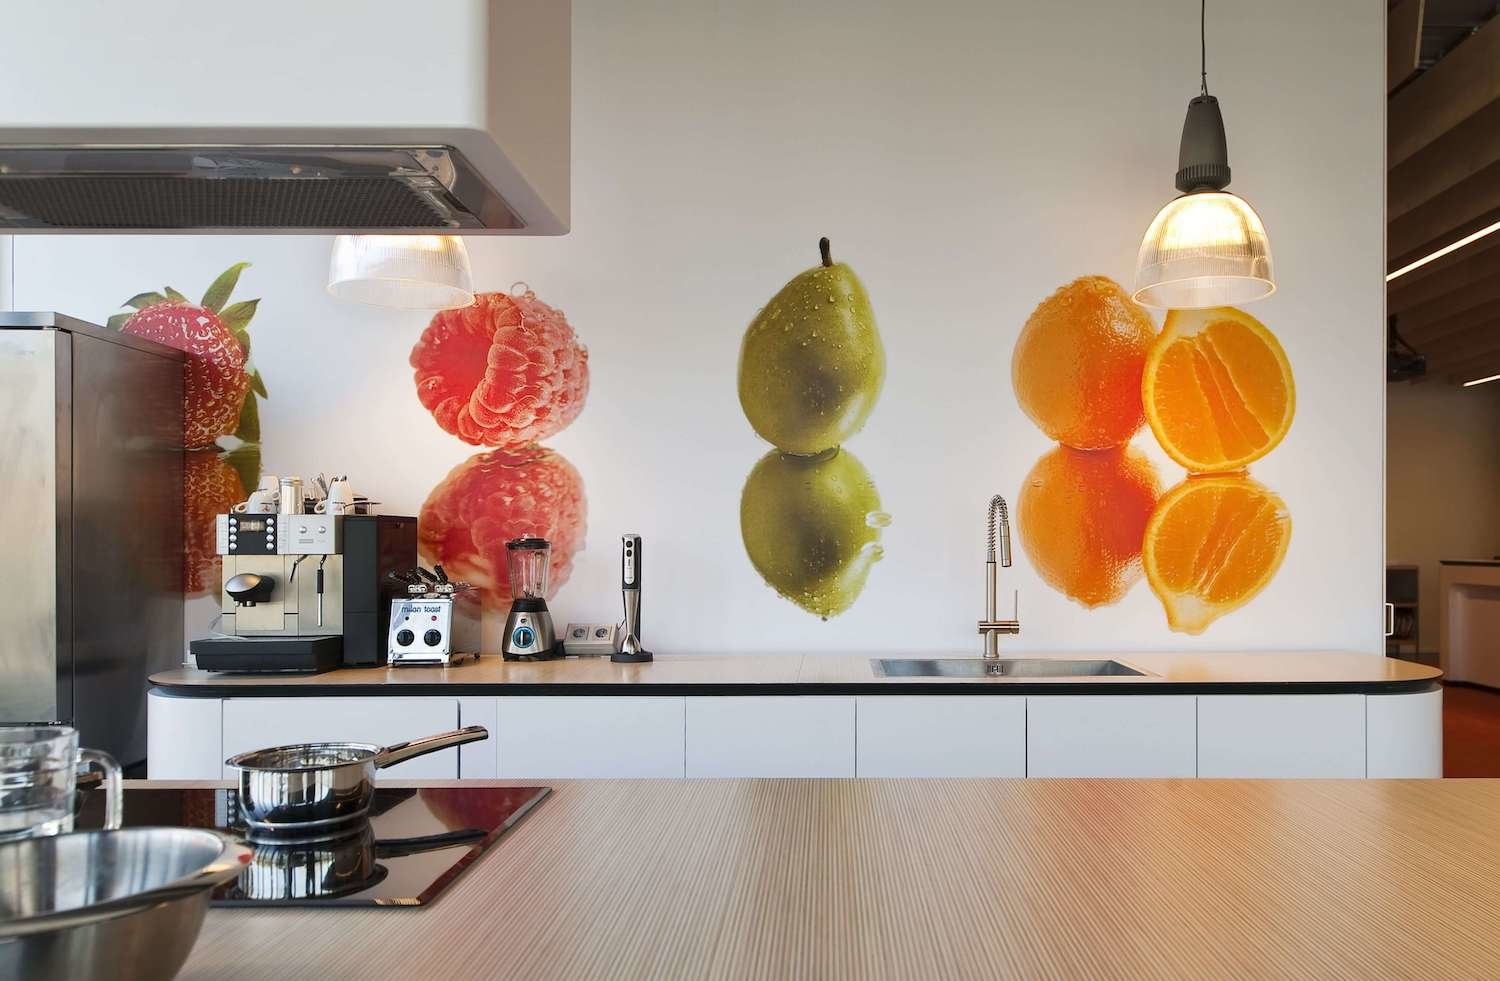 Large sliding doors with fruit prints can close off or add the reception area to the kitchen and portray the fresh and open identity of the company.